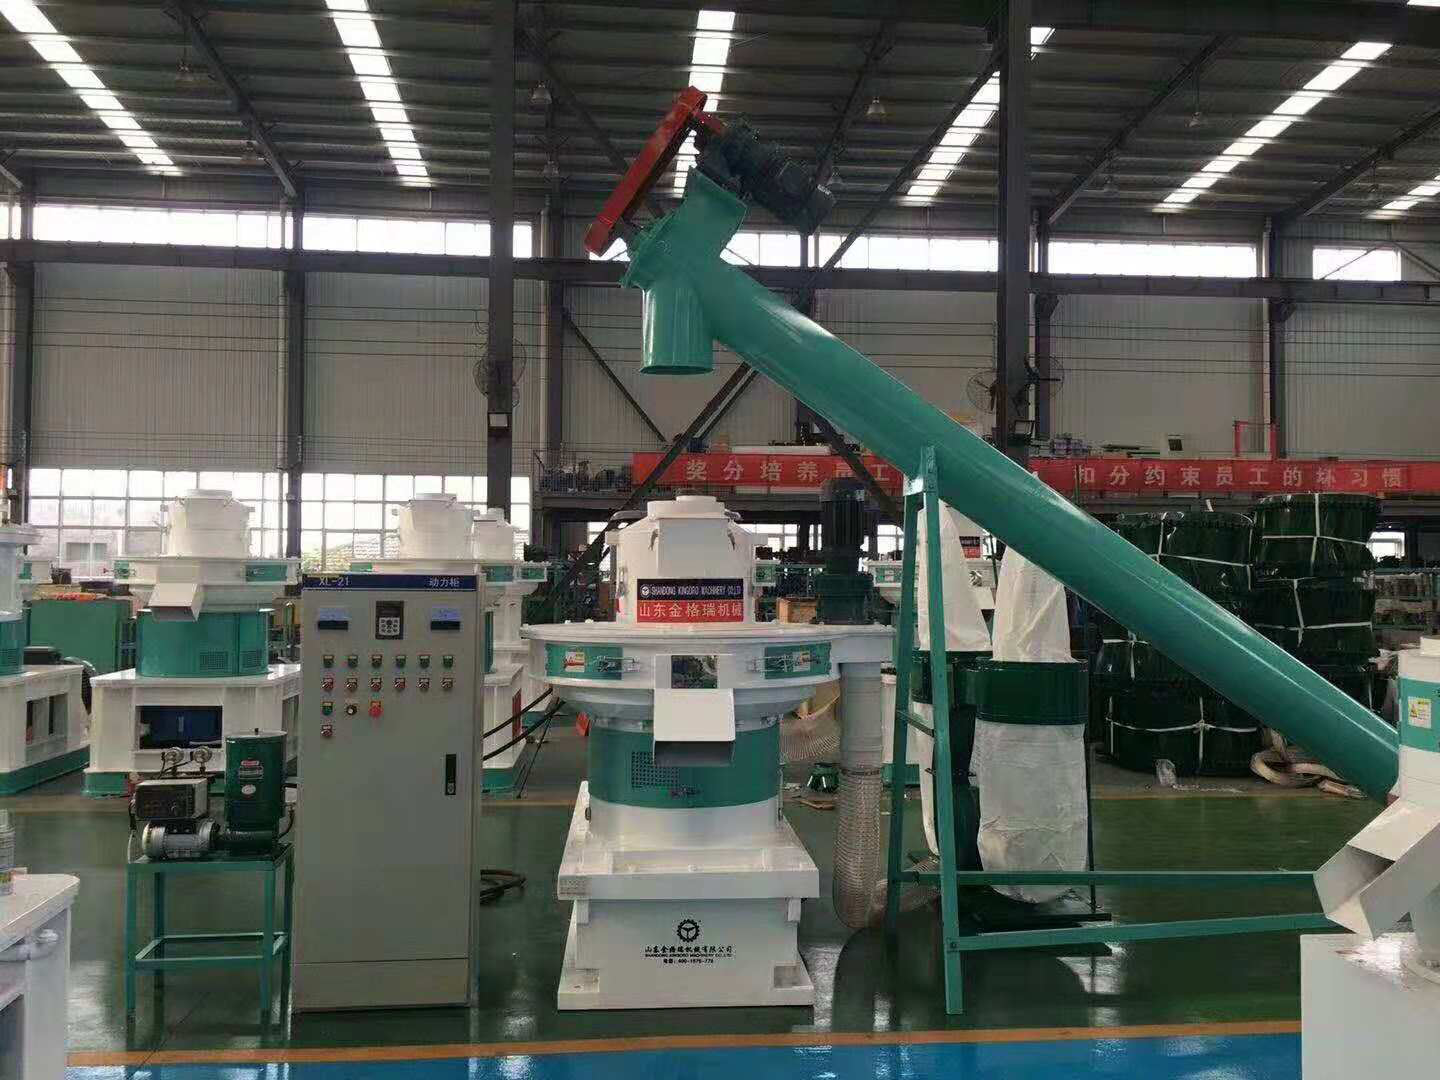 SZLH660 Wood Pellet Machine